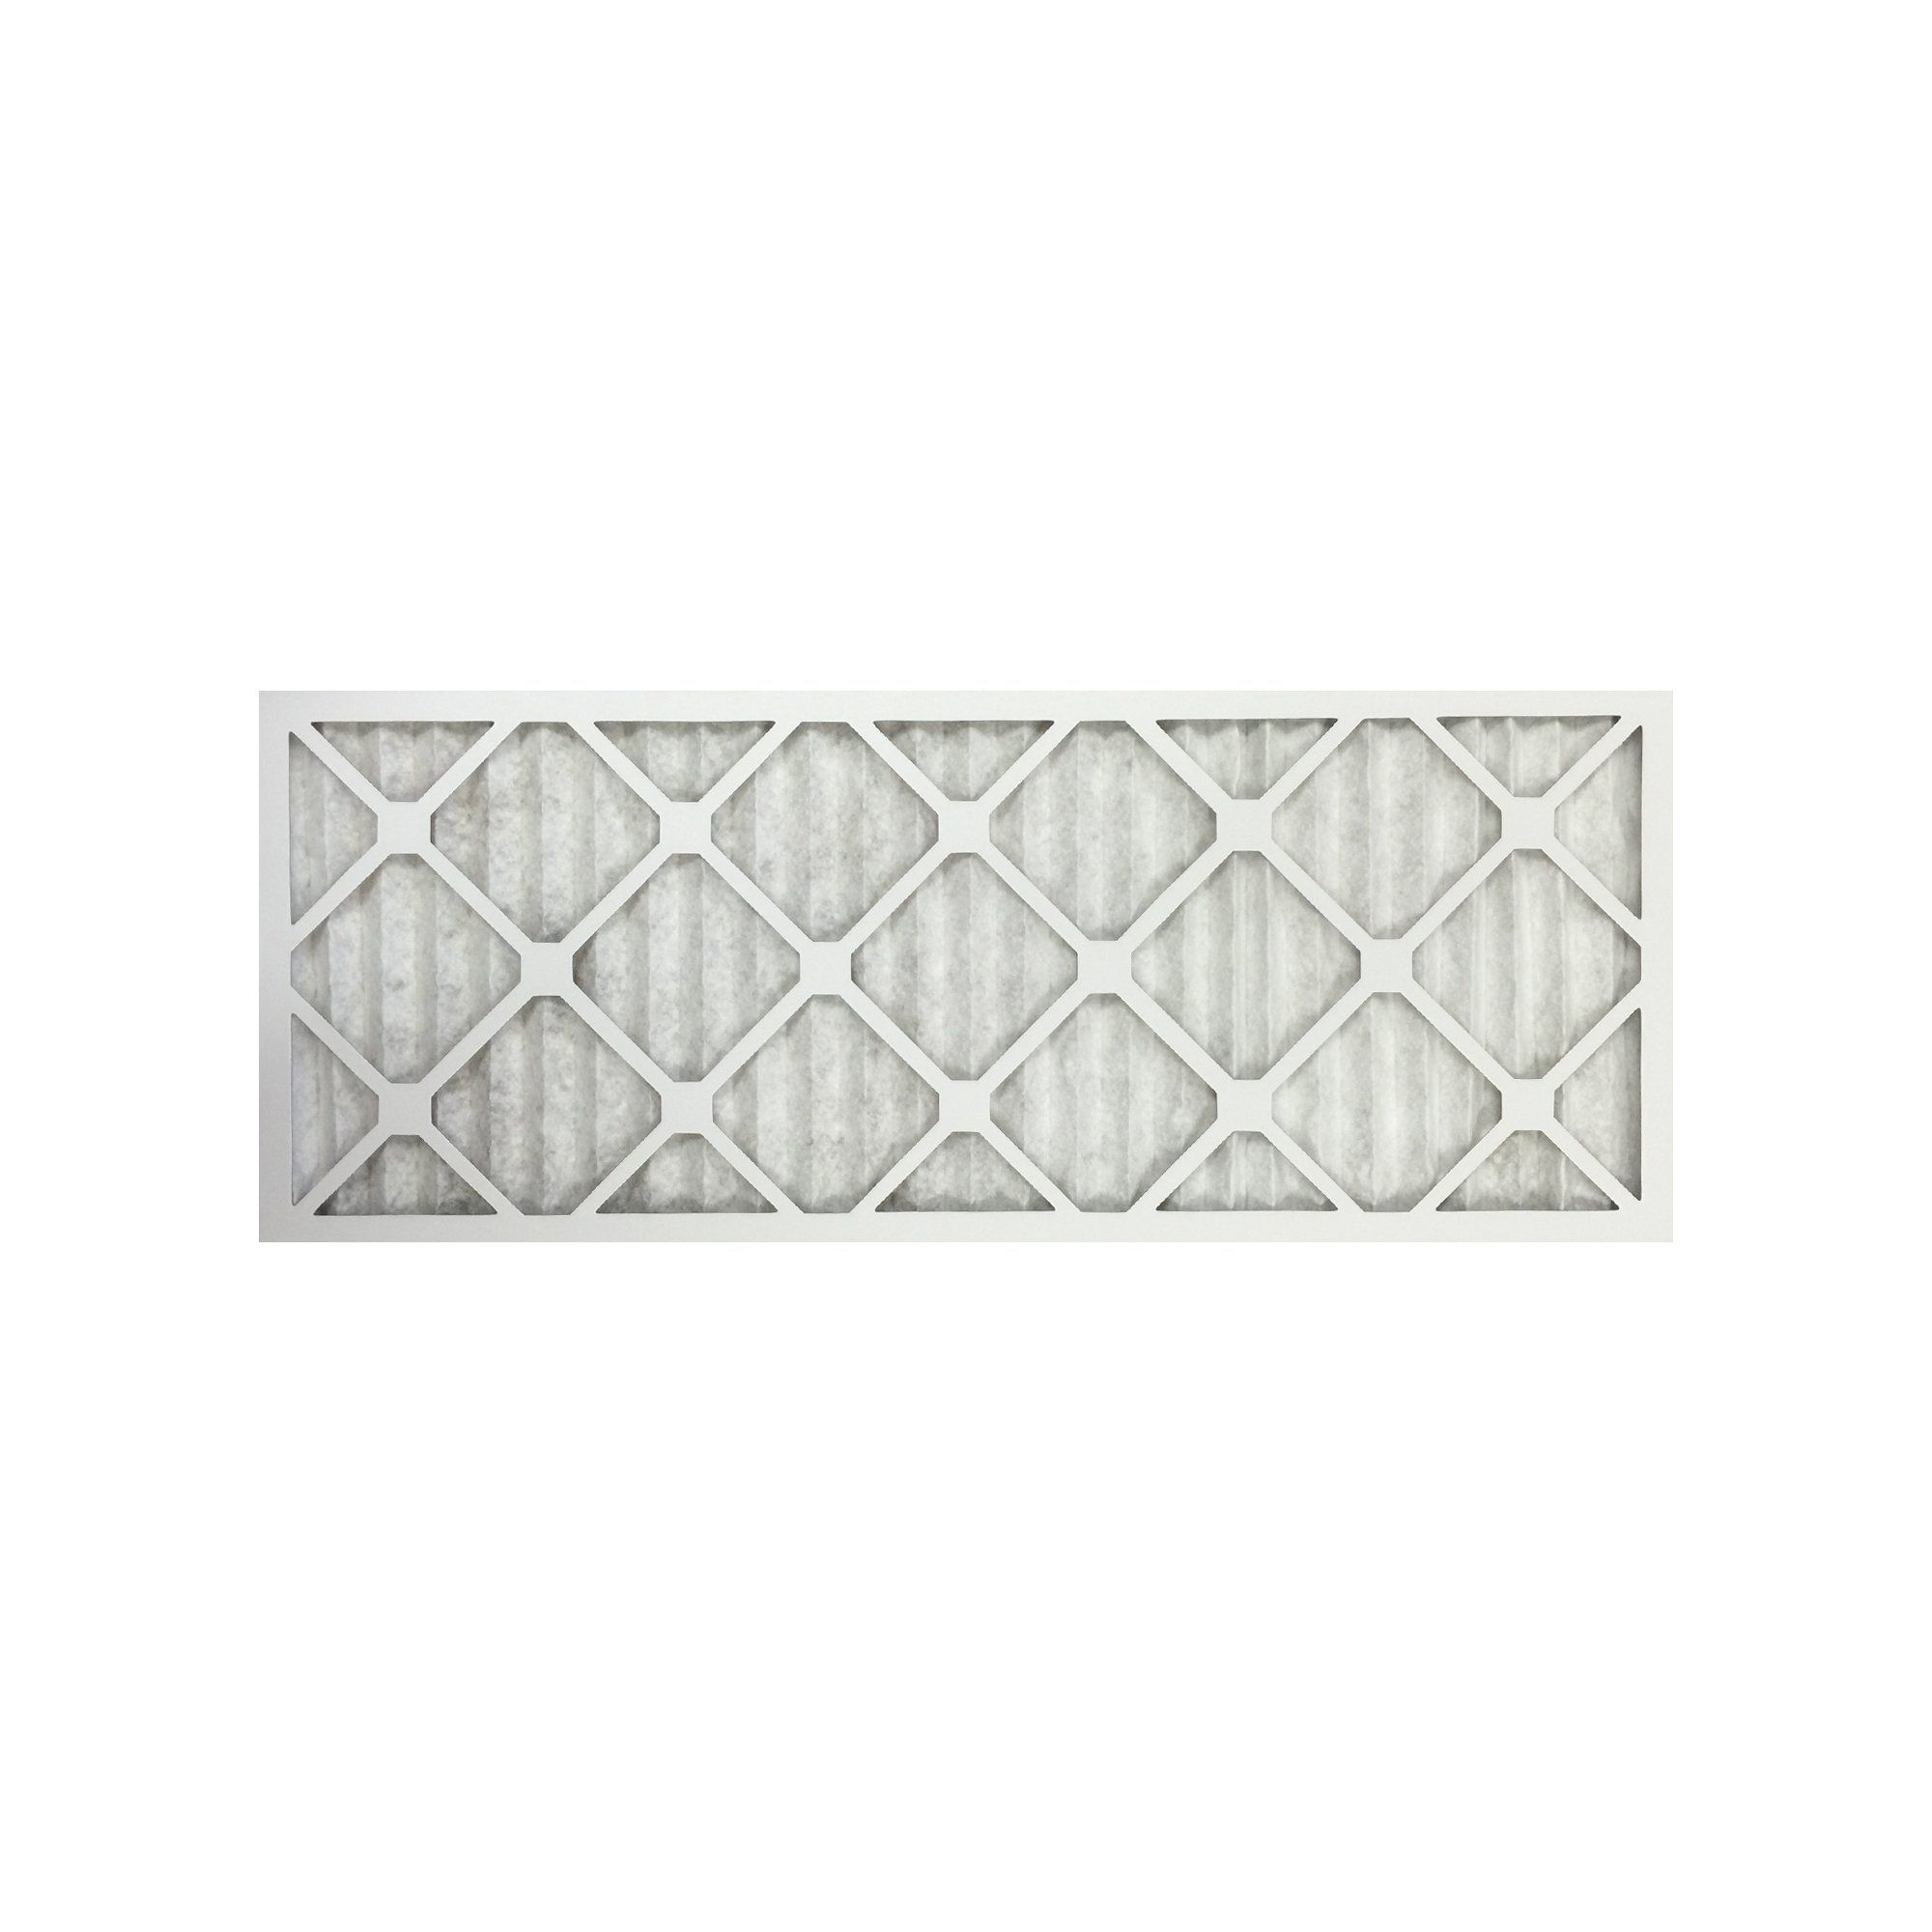 12x30x1 Merv 11 Air Furnace Filter Furnace Filters Air Purifier Best Air Filter